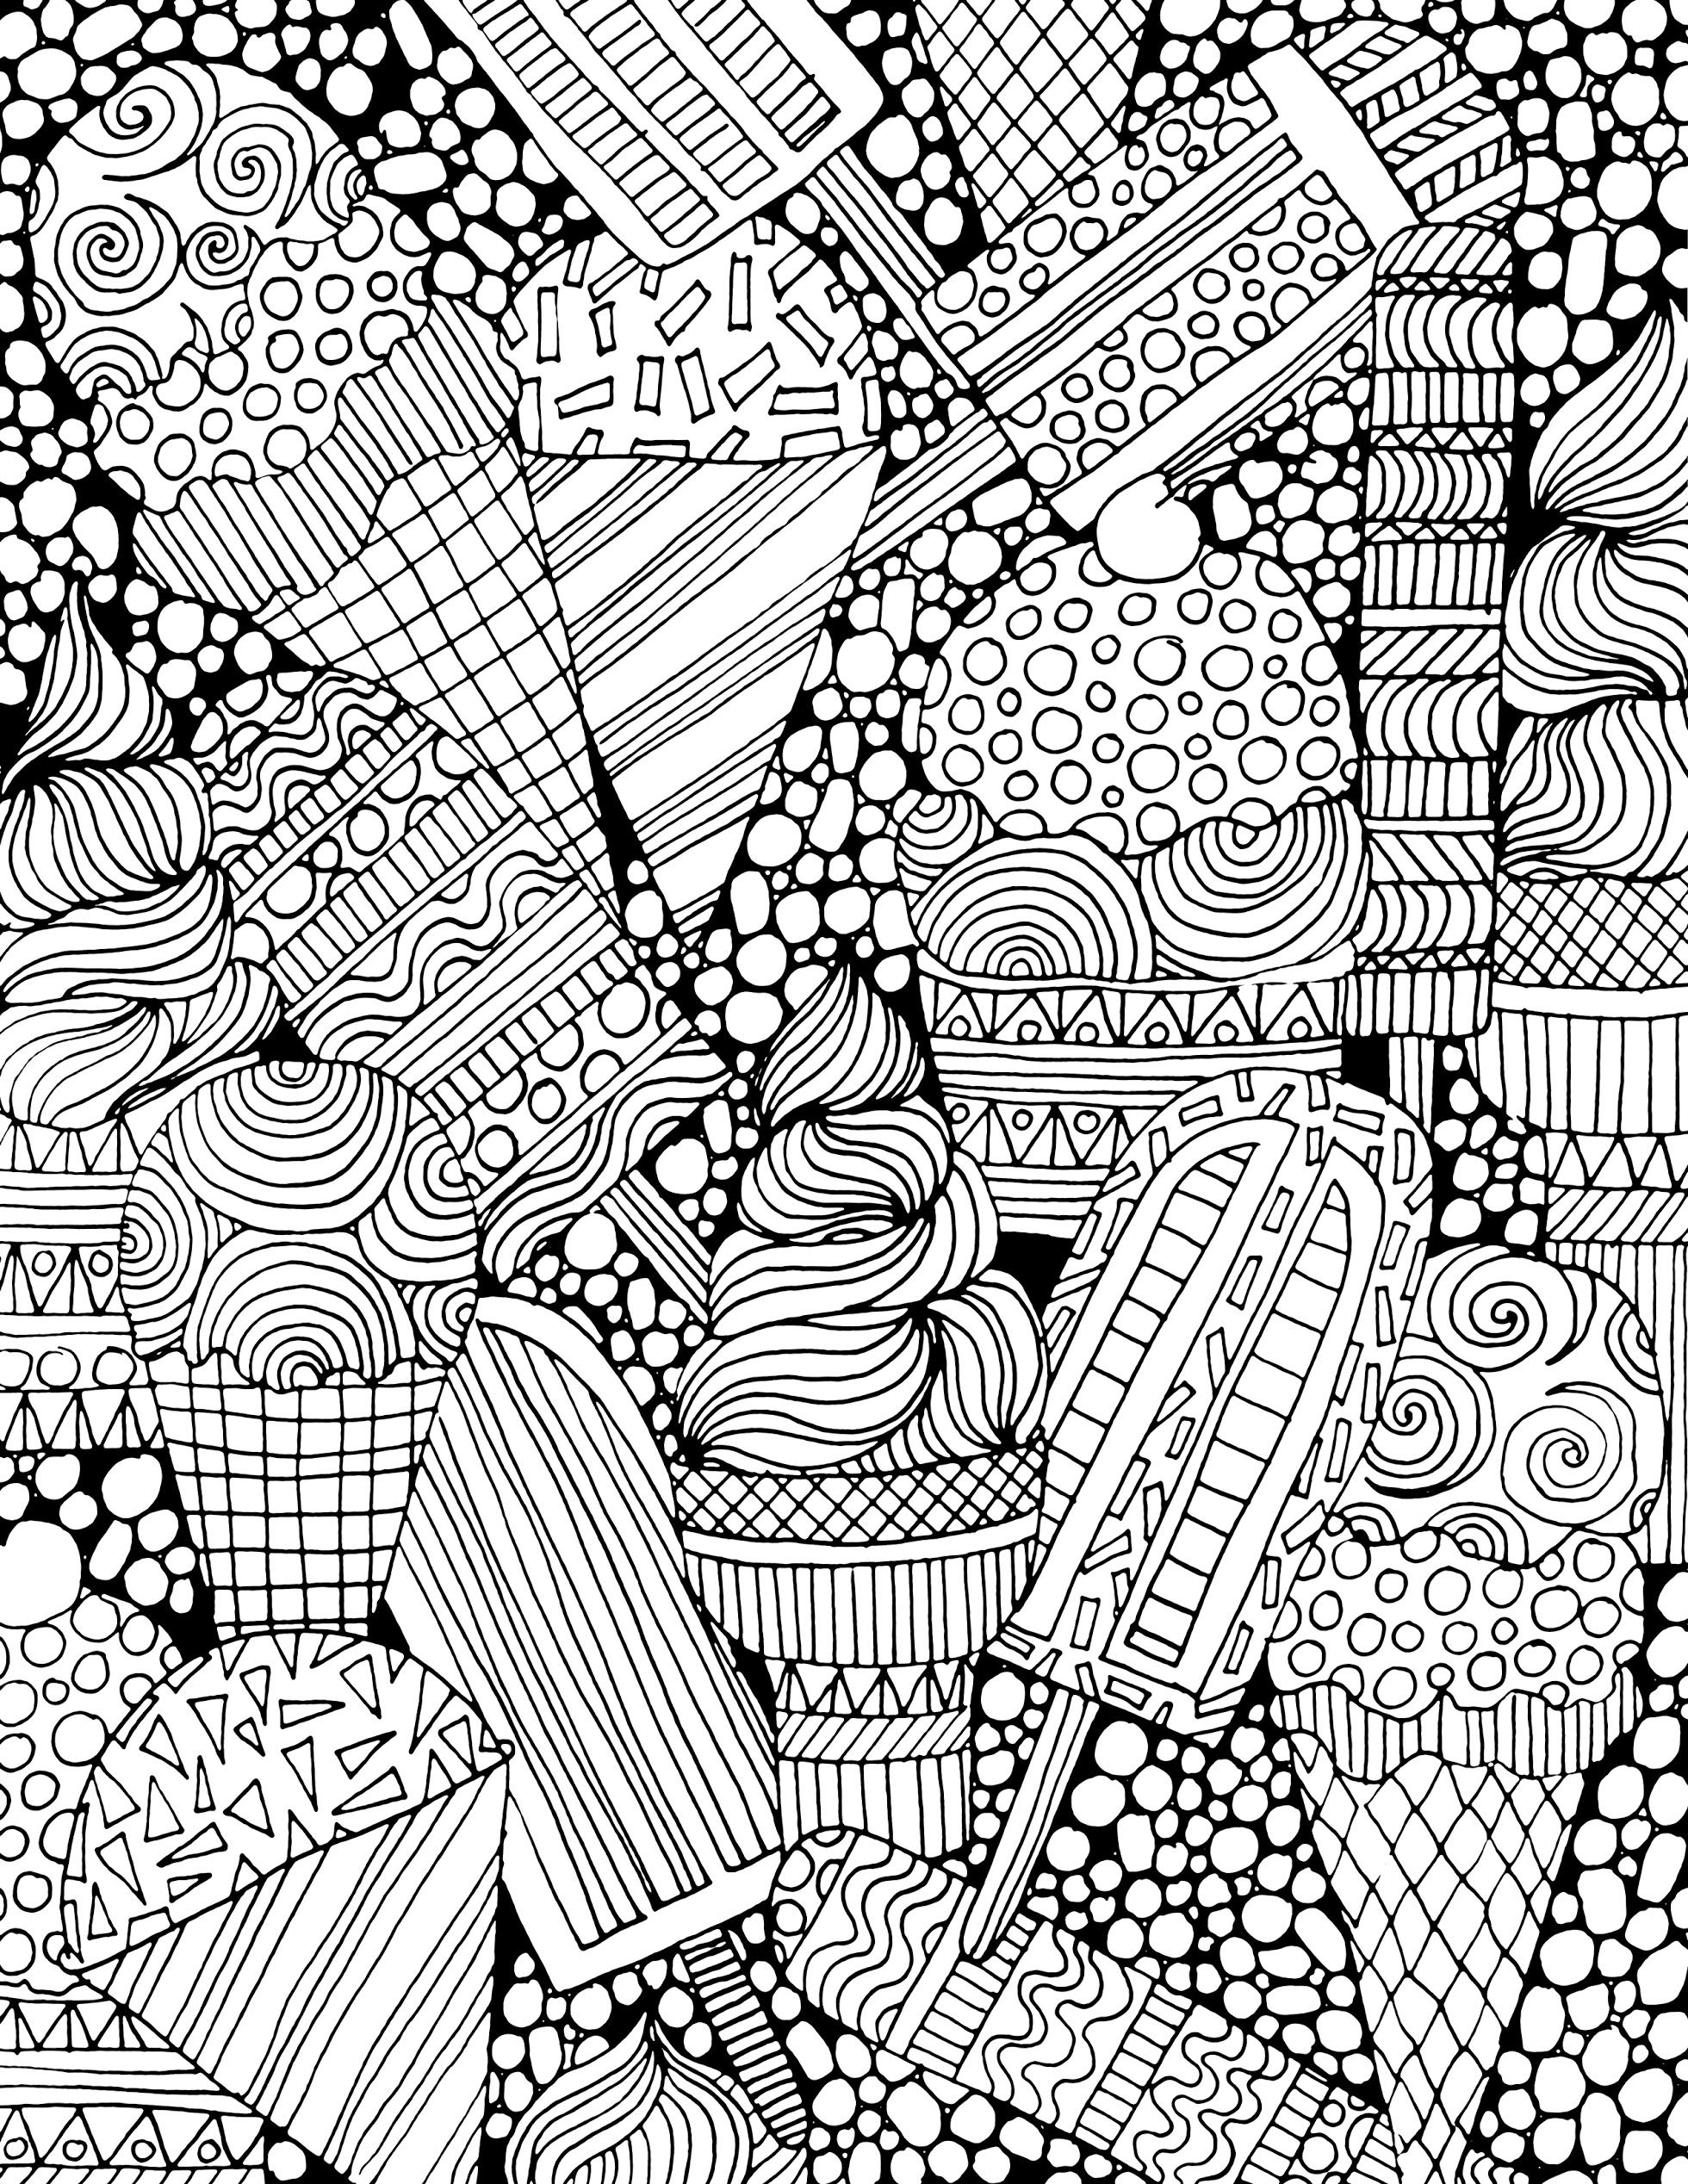 Pin by lynthia Edwards on coloringsheet Coloring pages